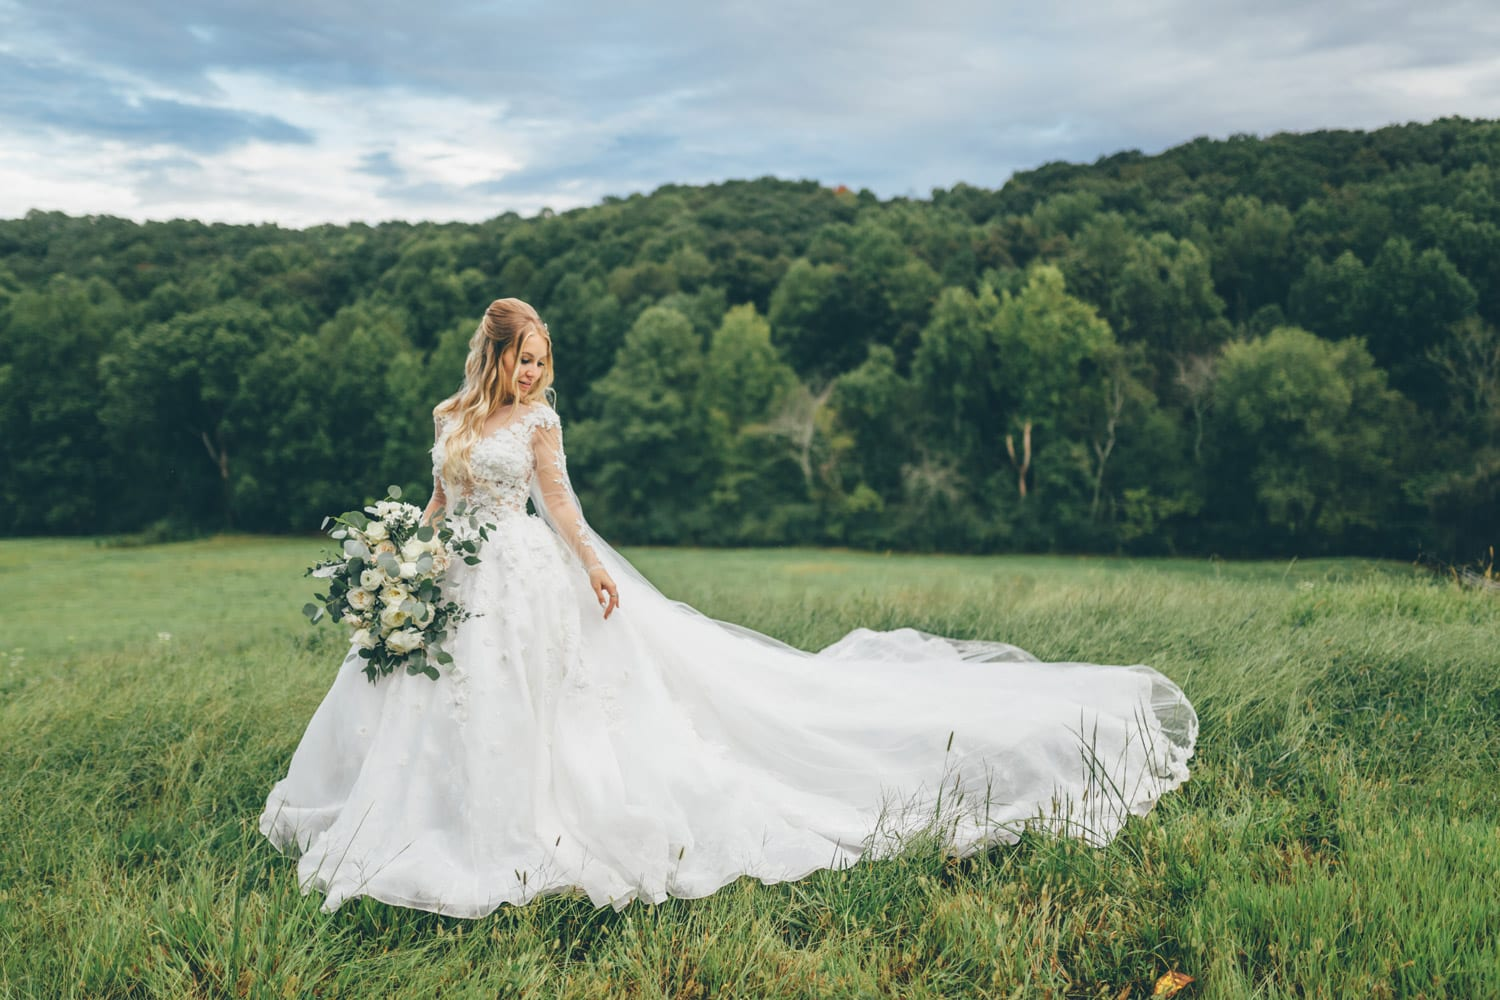 Bride poses in pasture with flowers